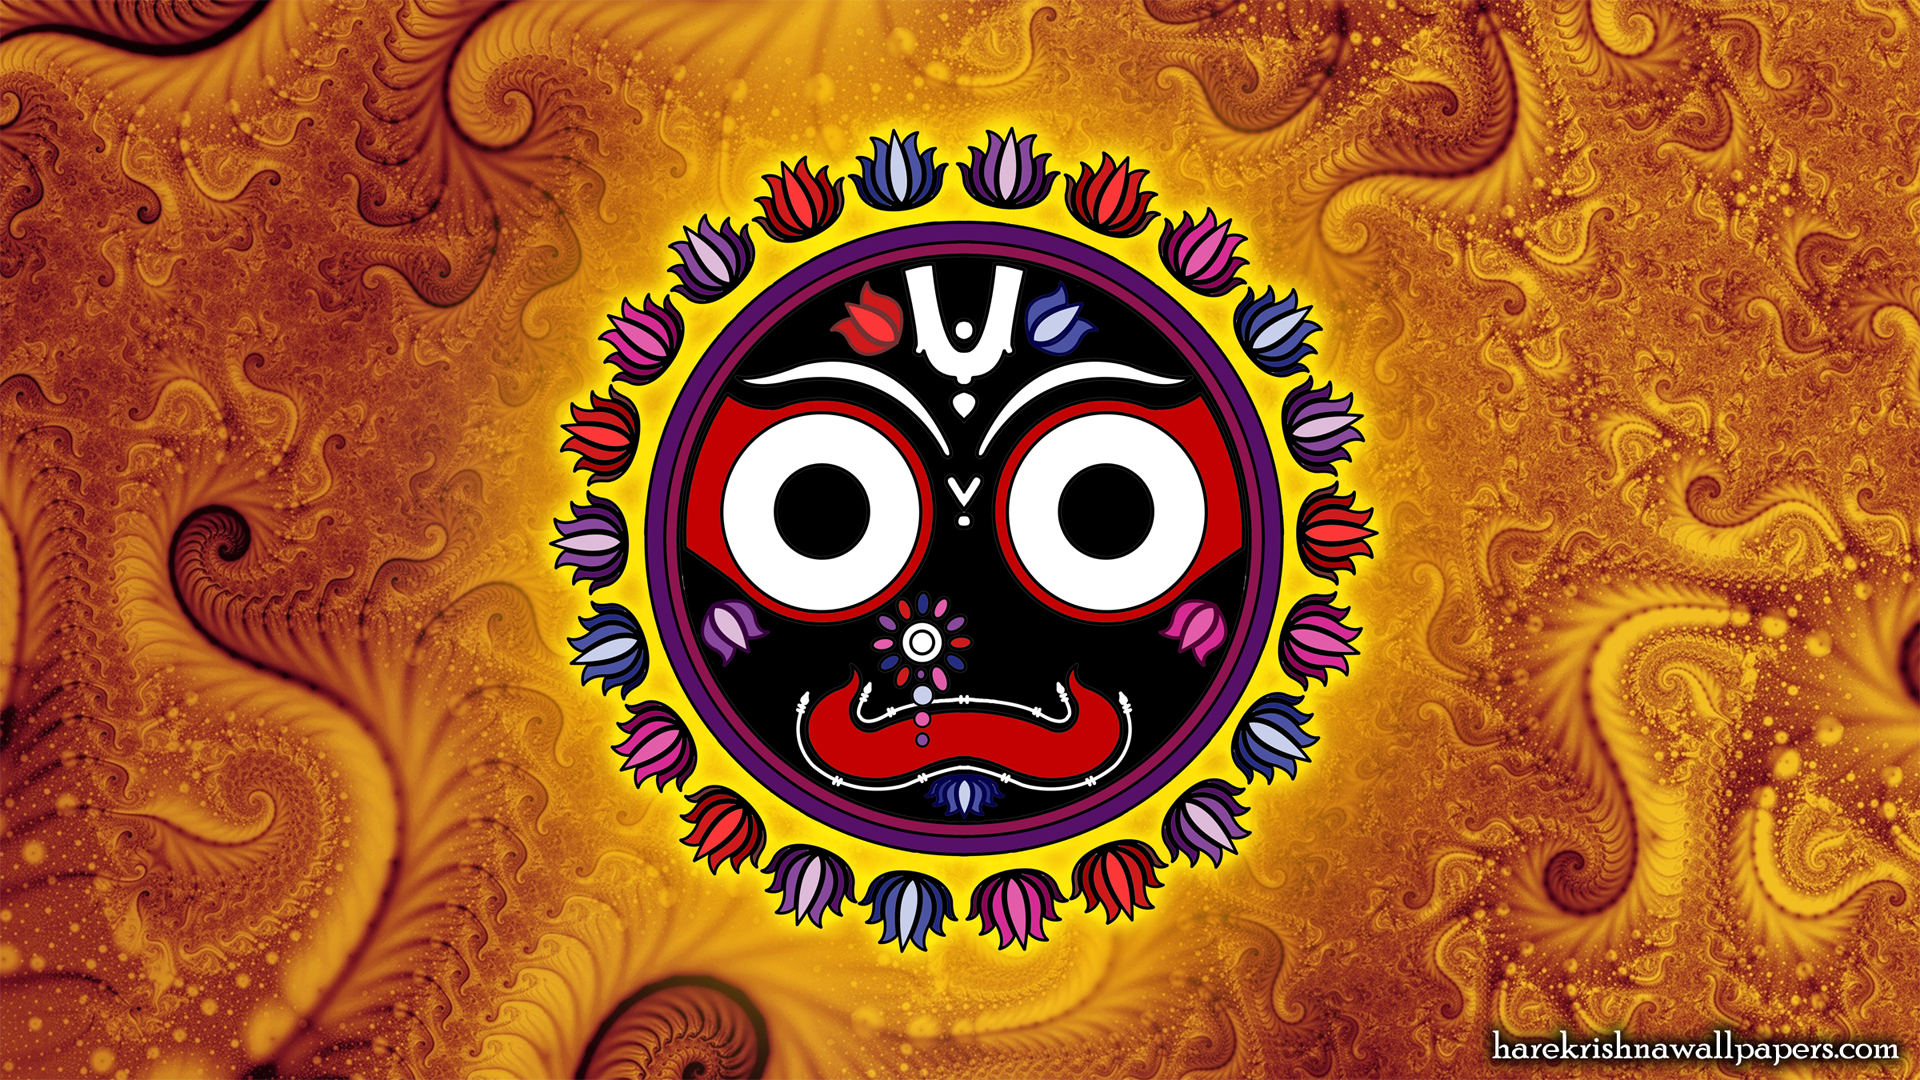 Jai Jagannath Wallpaper (032) Size 1920x1080 Download